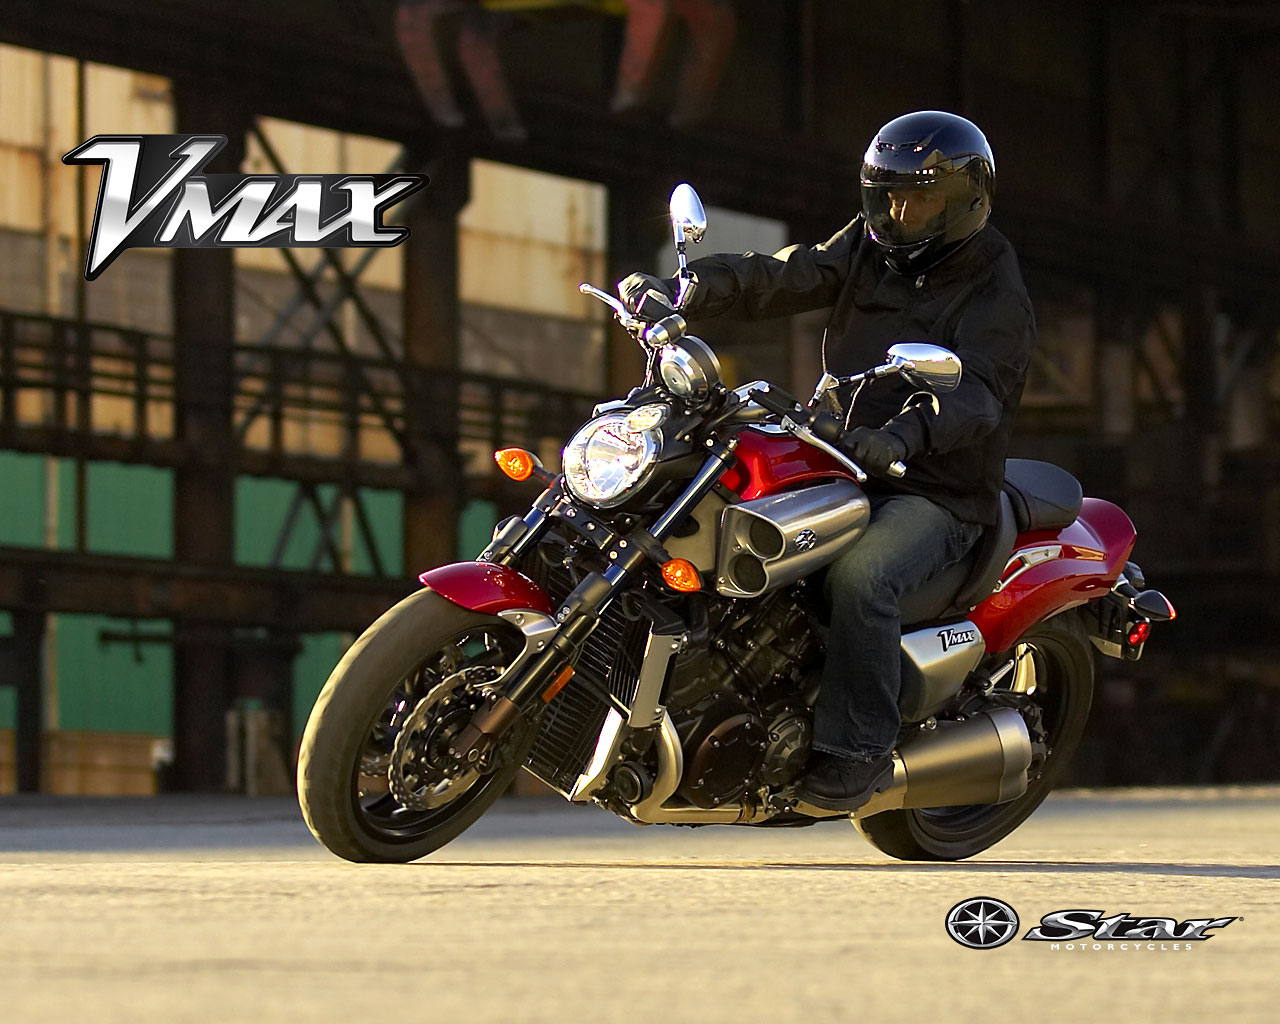 2010 Yamaha V-Max Best Action